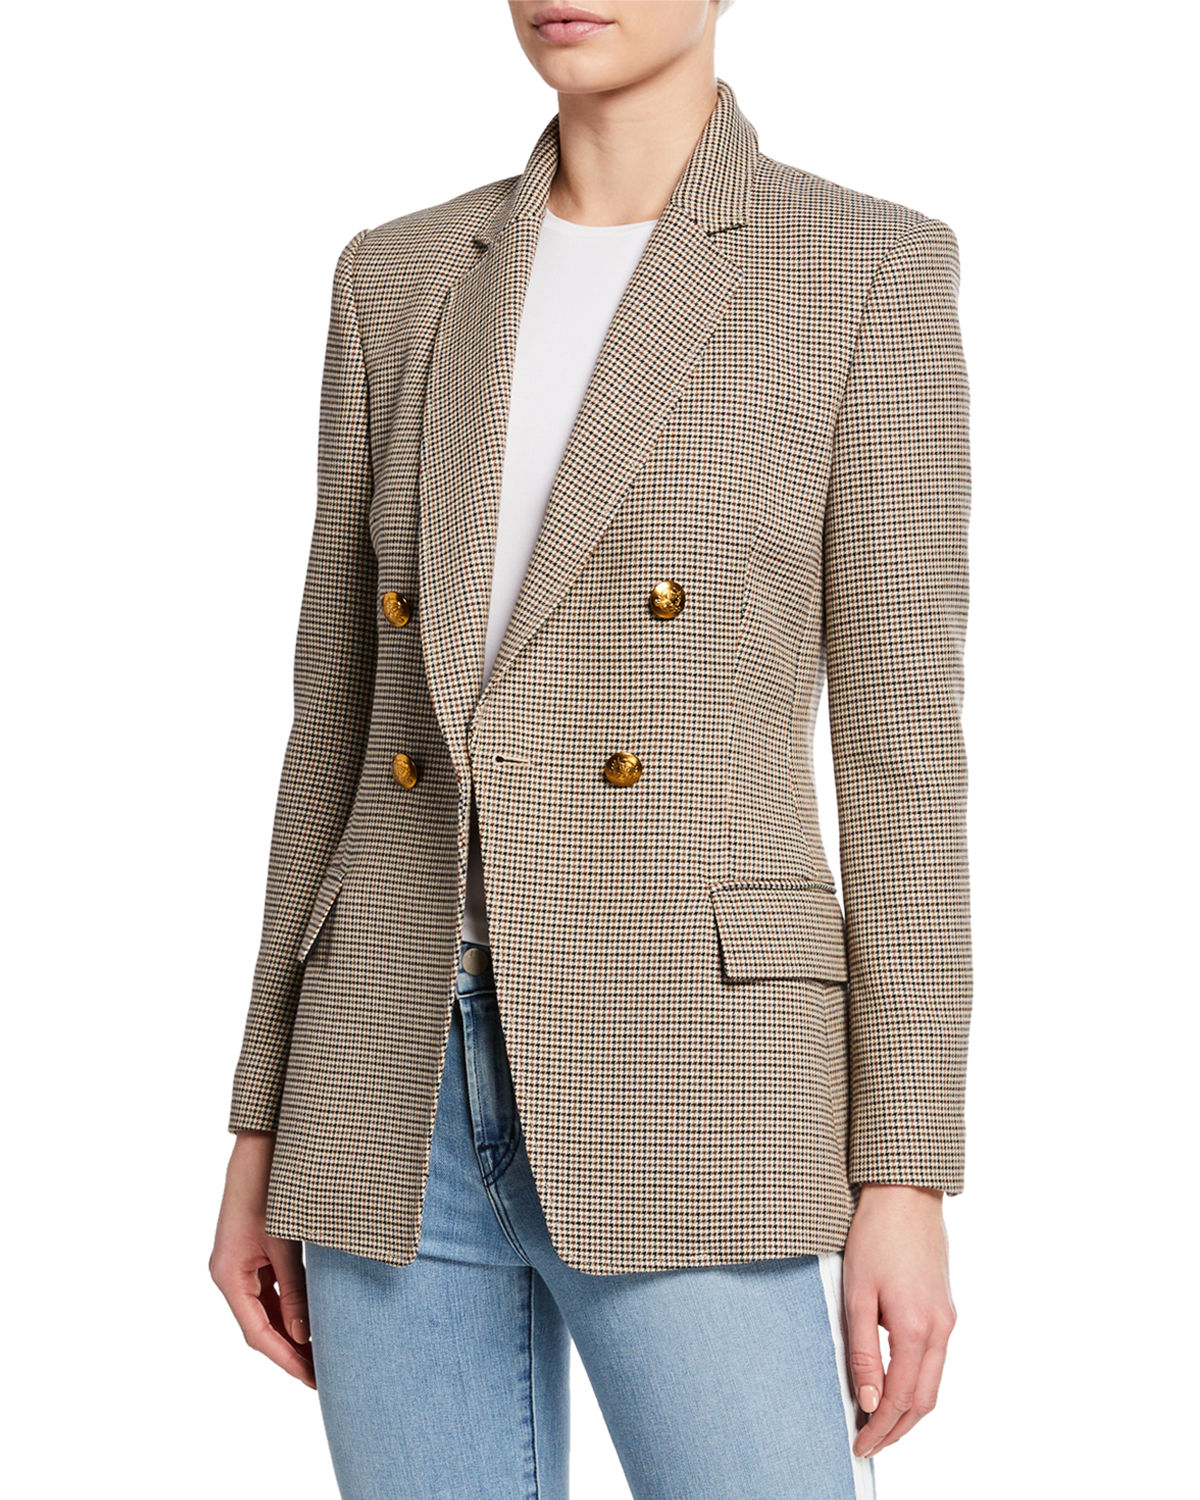 A.l.c Blazers Sedgwick Double-Breasted Houndstooth Blazer, BEIGE